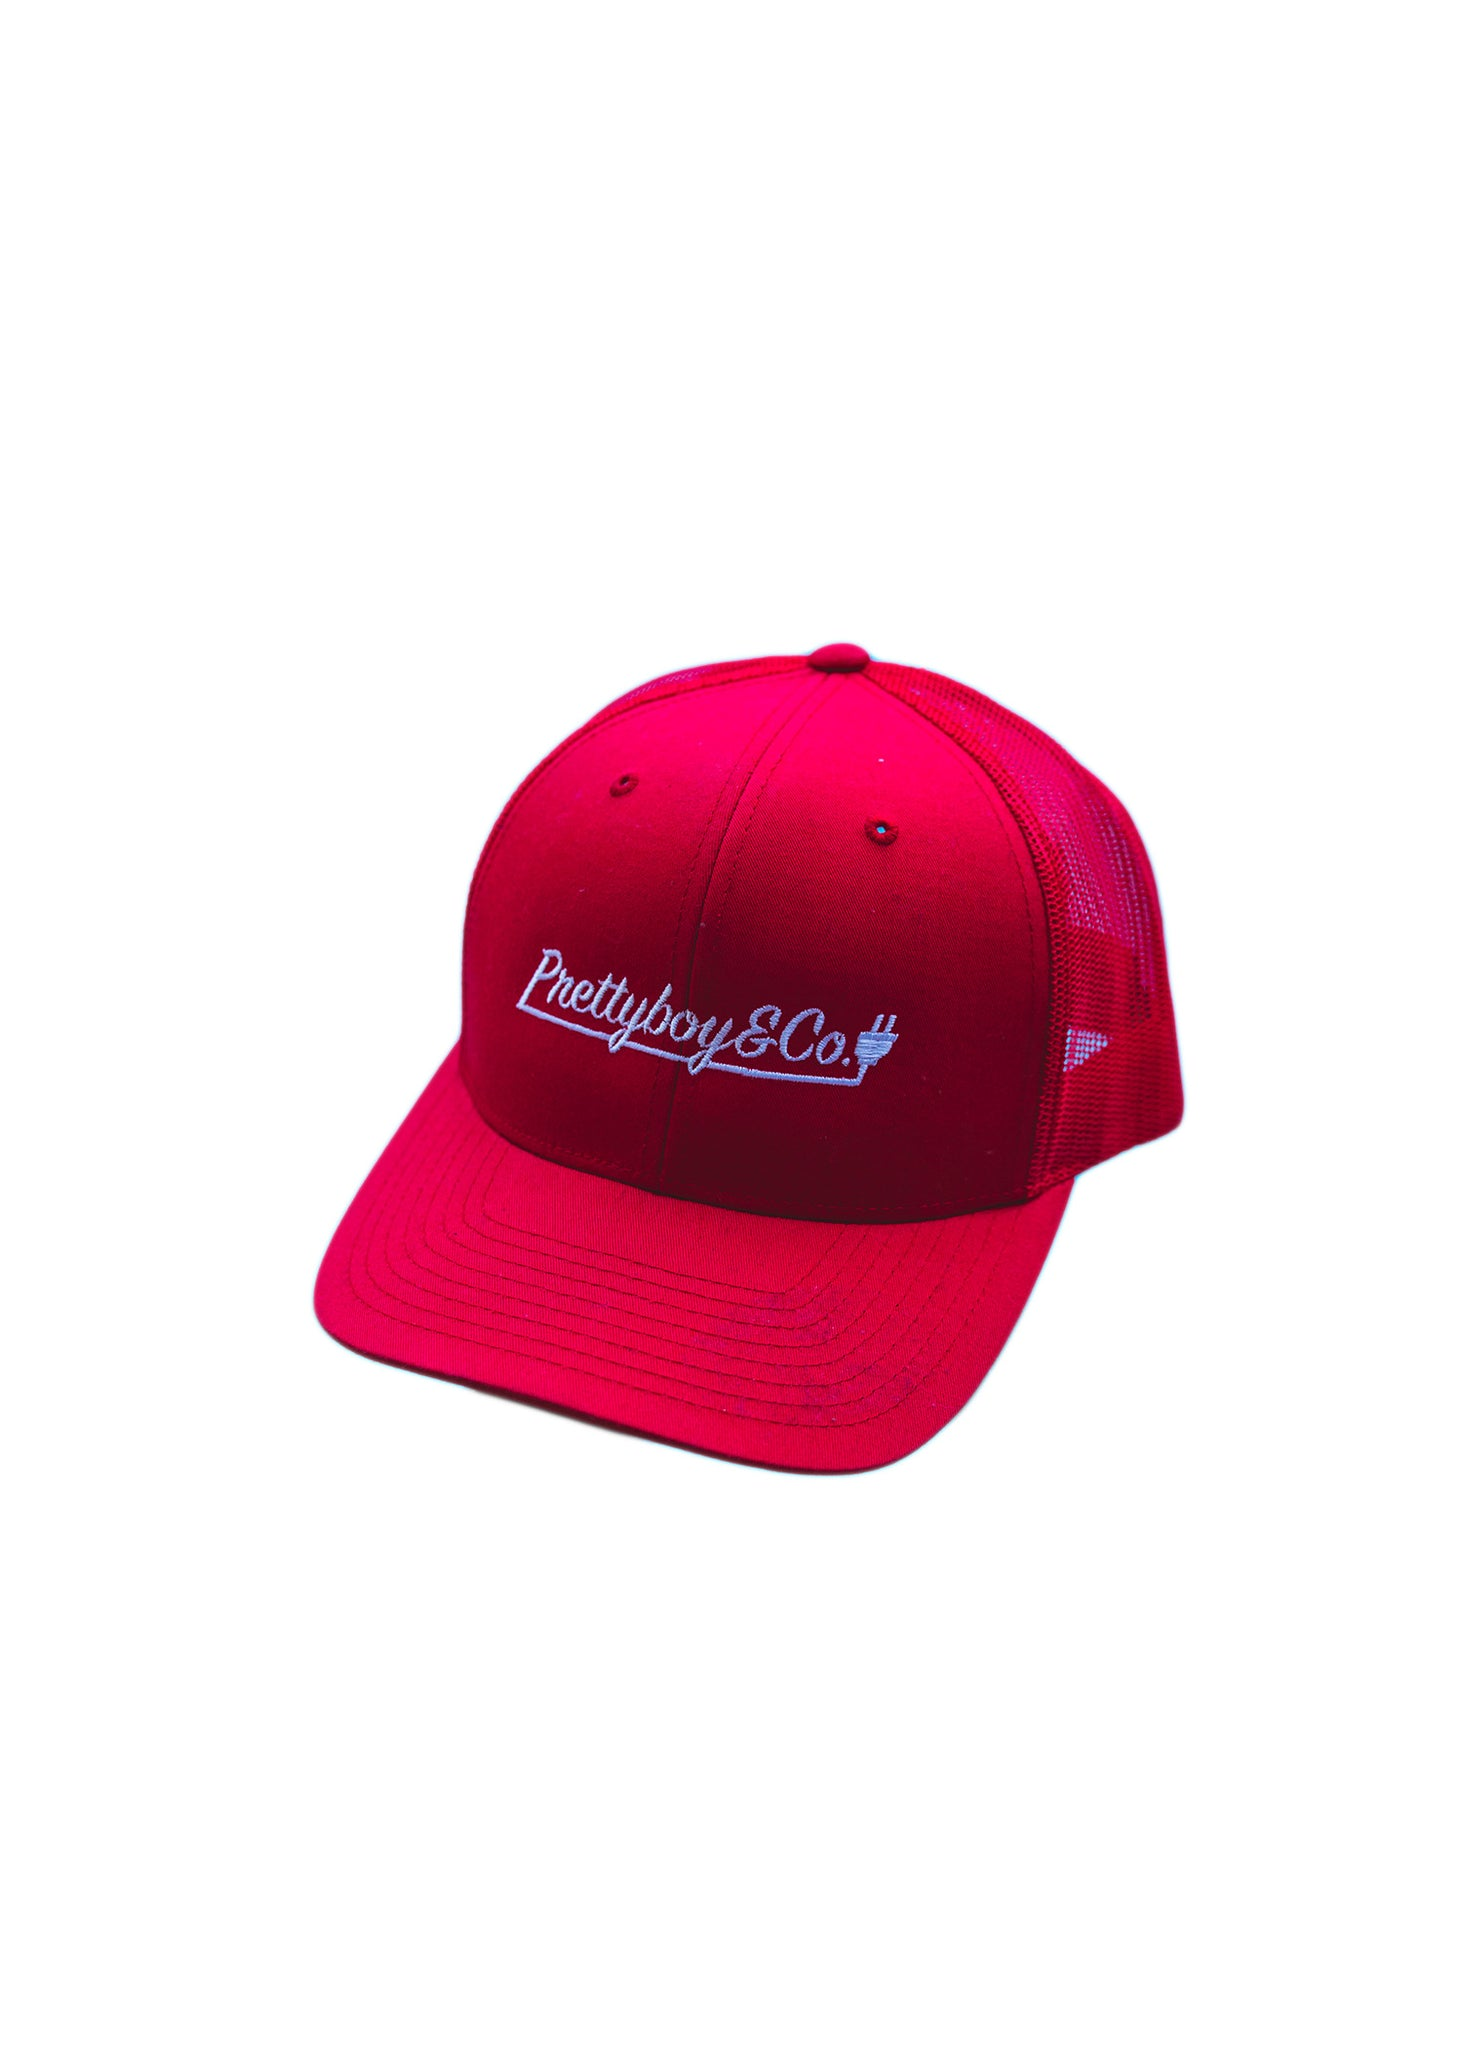 Embroidered Script Trucker Snapback Hat (Limited)